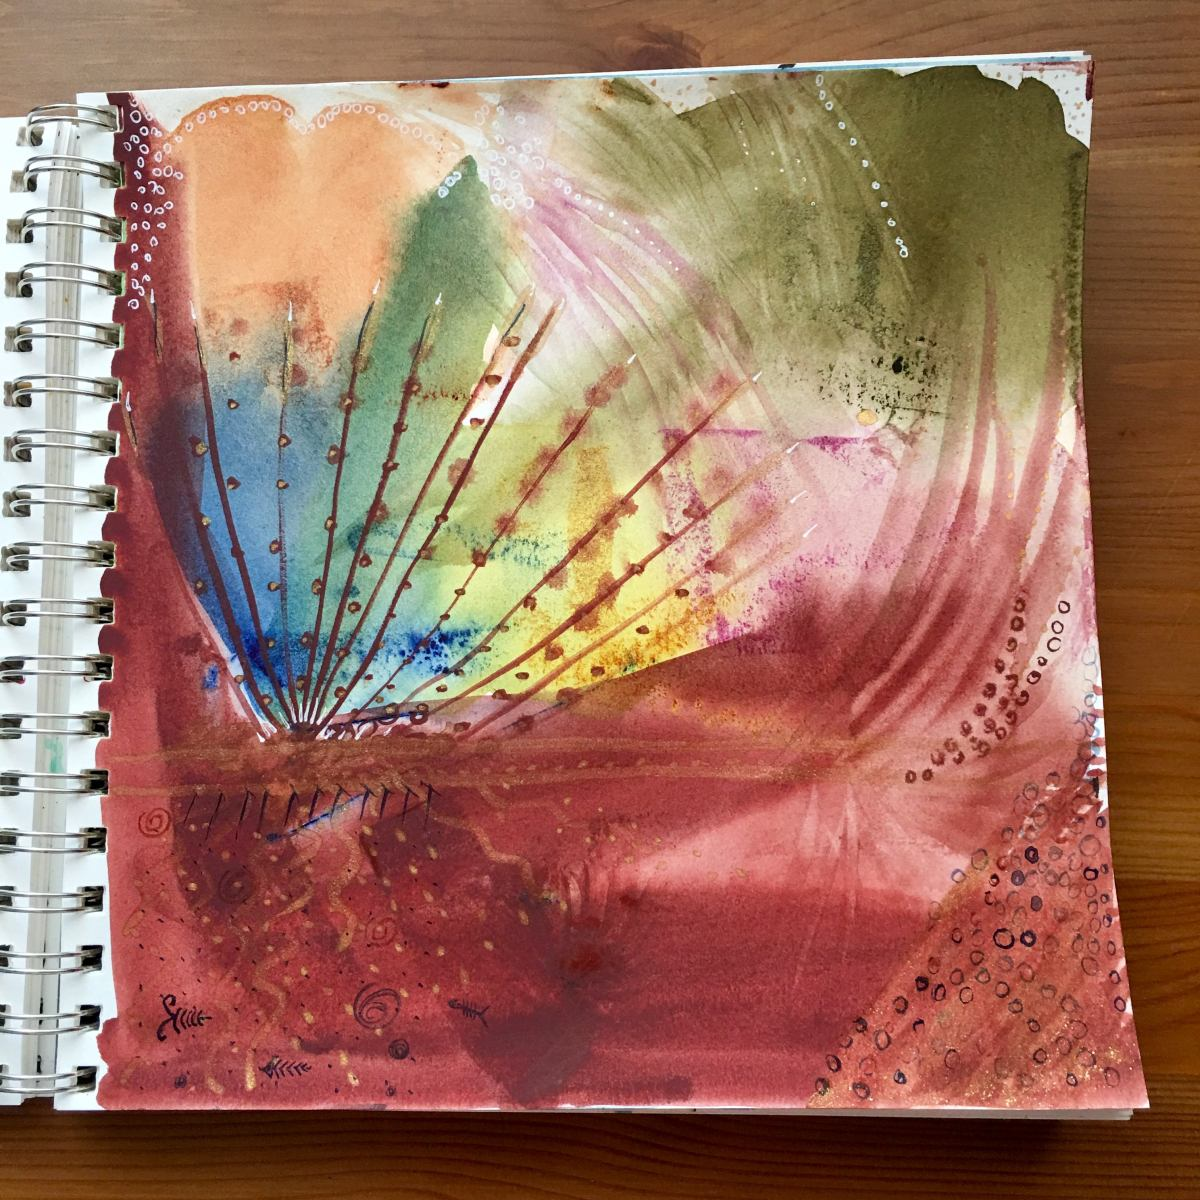 Paint test of M. Graham Watercolor paints by Jessica Seacrest on Doodlewash